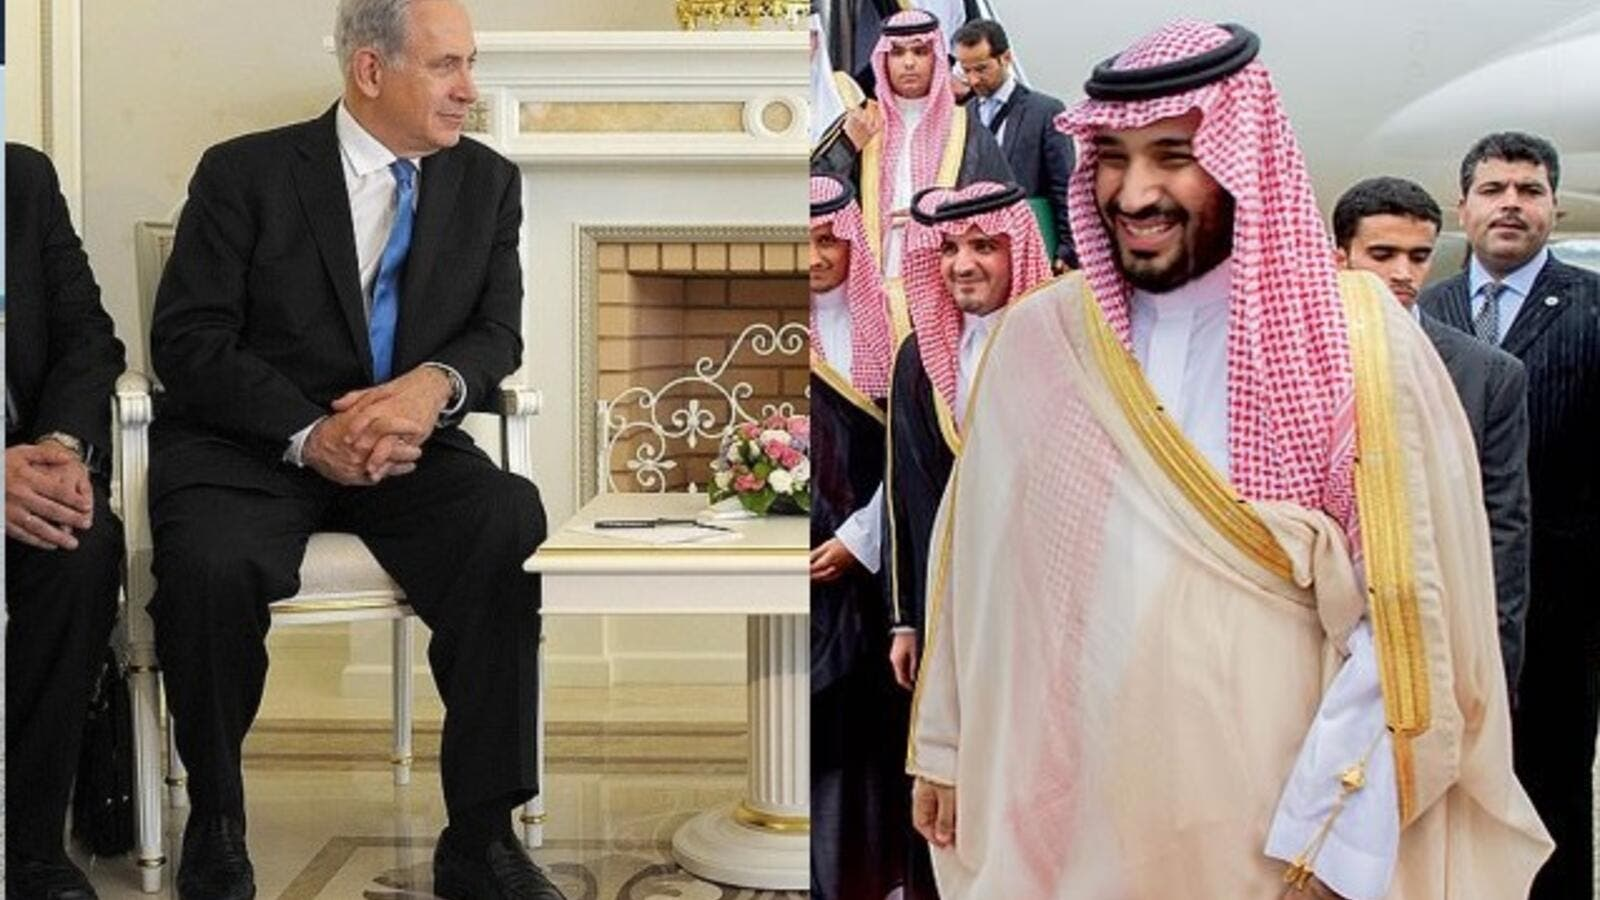 There are currently no diplomatic relations between Israel and Saudi Arabia. Could that be about to change? (Left: the Kremlin, Right: Wikimedia Commons)